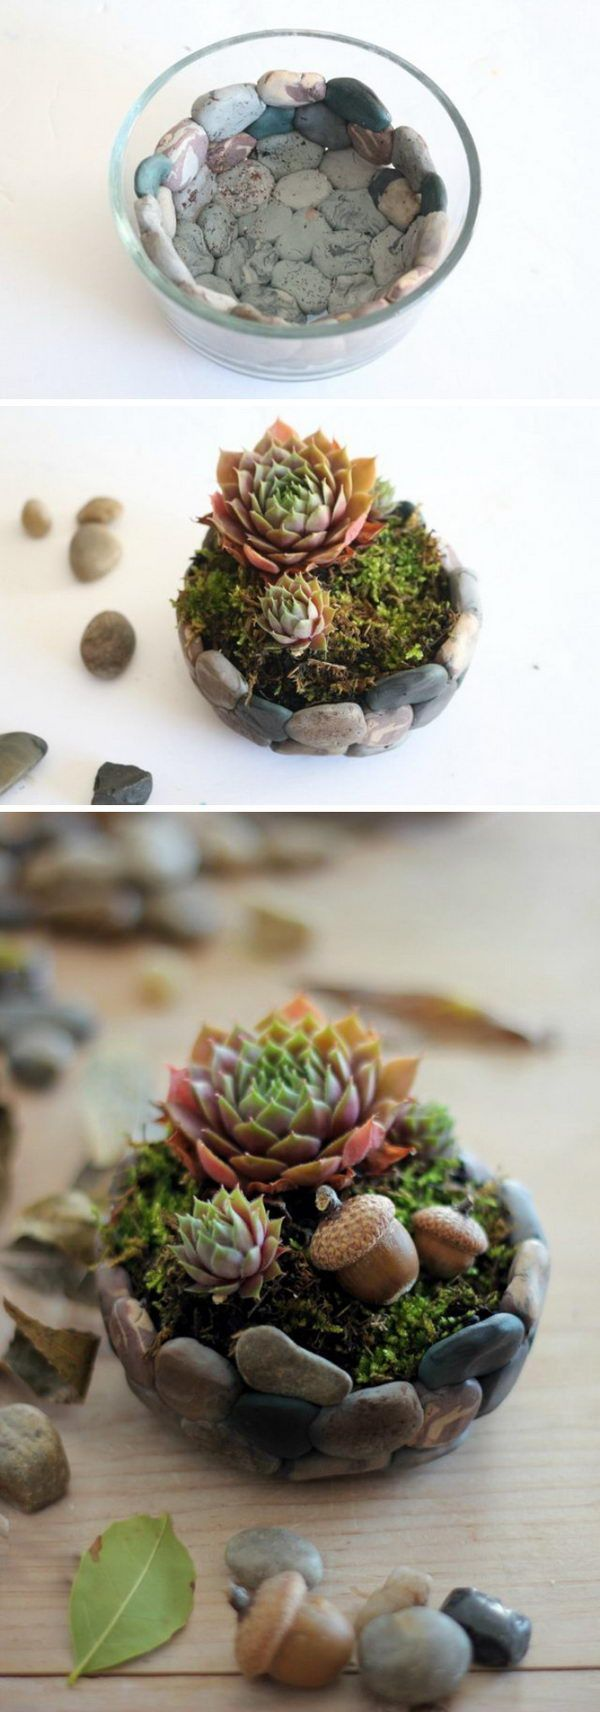 25 DIY Succulent Garden Ideas and Tutorials #gartenideen